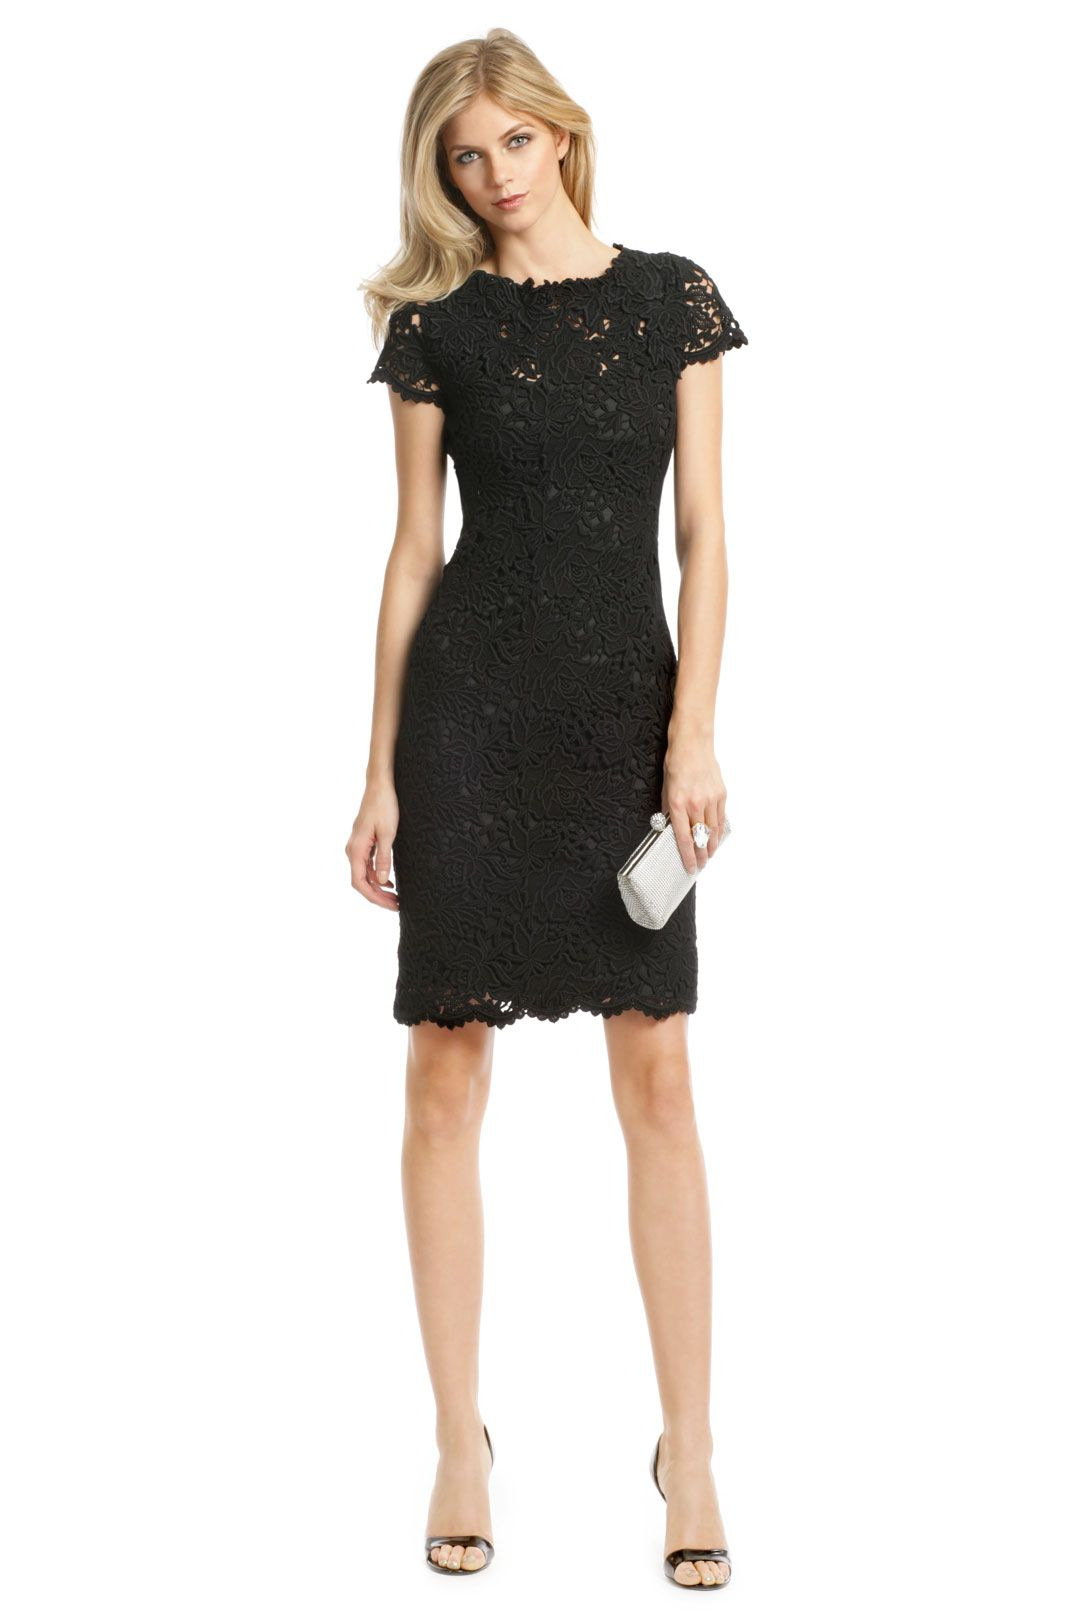 The Dress I Have Been Looking For Loolu Lace Sheath